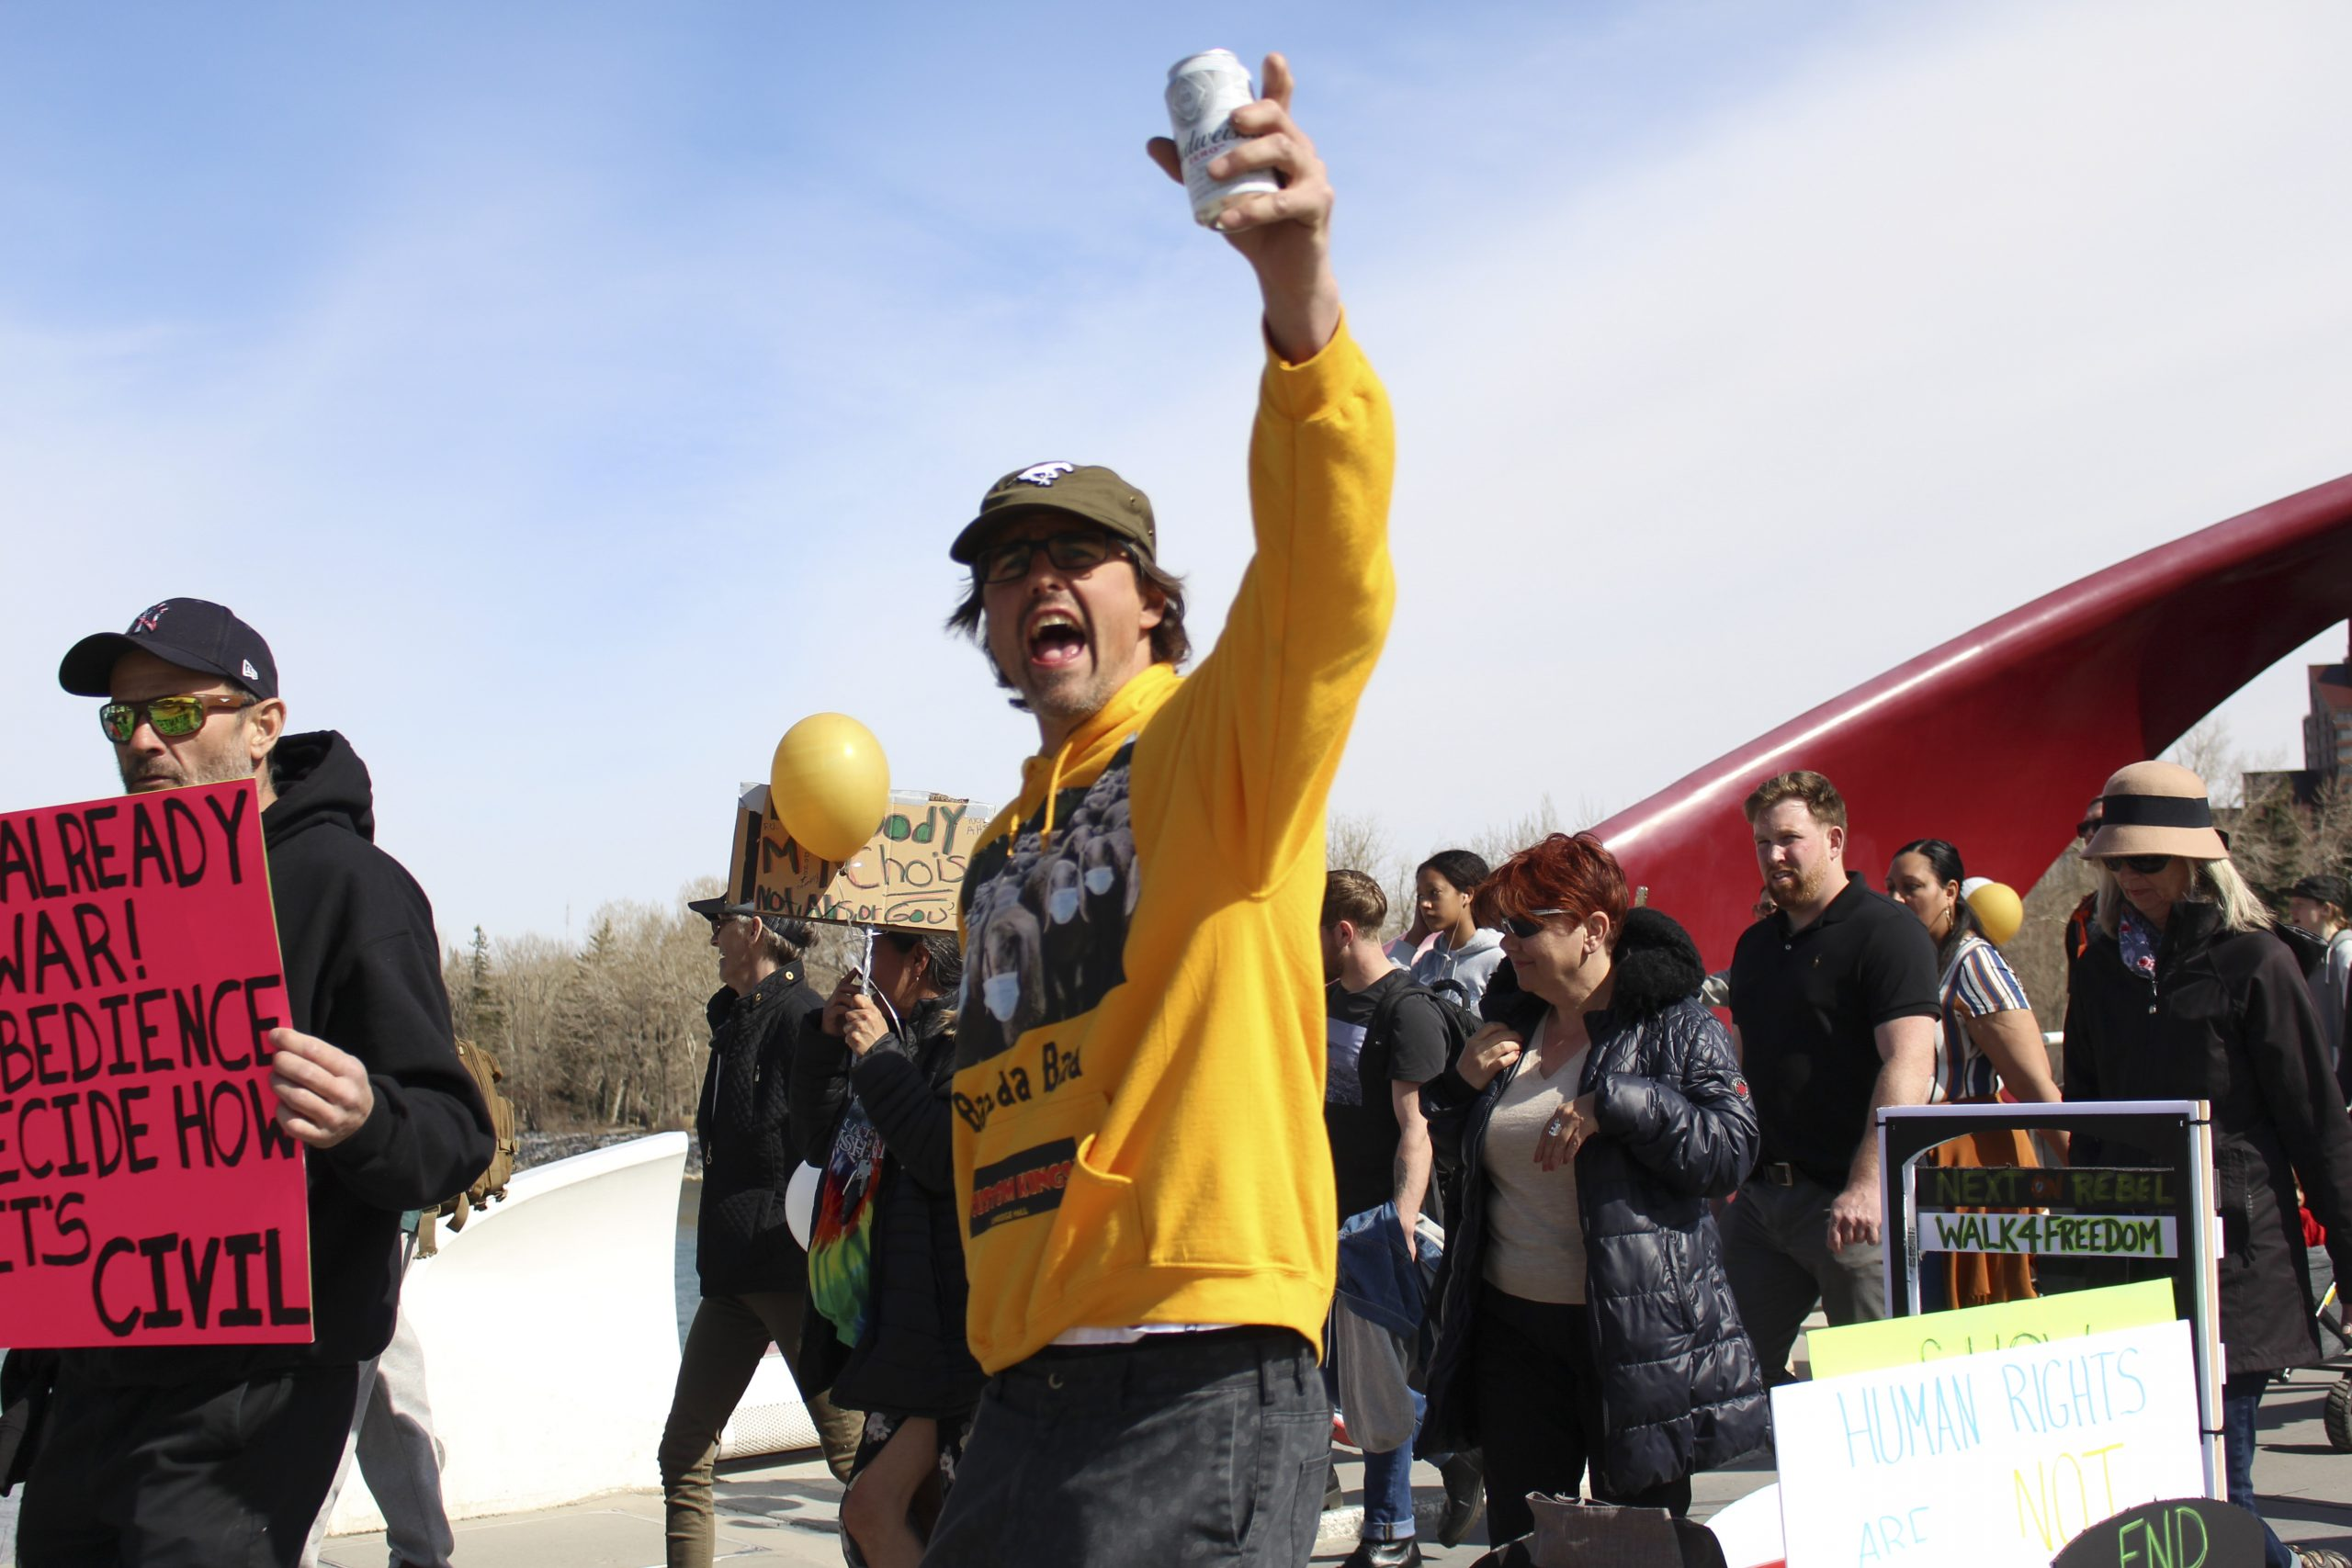 A man shouts and holds his can of beer to the sky while he marches with Walk for Freedom across the Peace Bridge toward the Sunnyside community in Calgary on April 3, 2021. Walk for Freedom is one of two organizations that protest against the COVID-19 restrictions, business closures, and the mask mandate. The Walk for Freedom group started rallying from the Princes Island Park stage before marching toward the bridge. (Photo by Alejandro Melgar/SAIT)